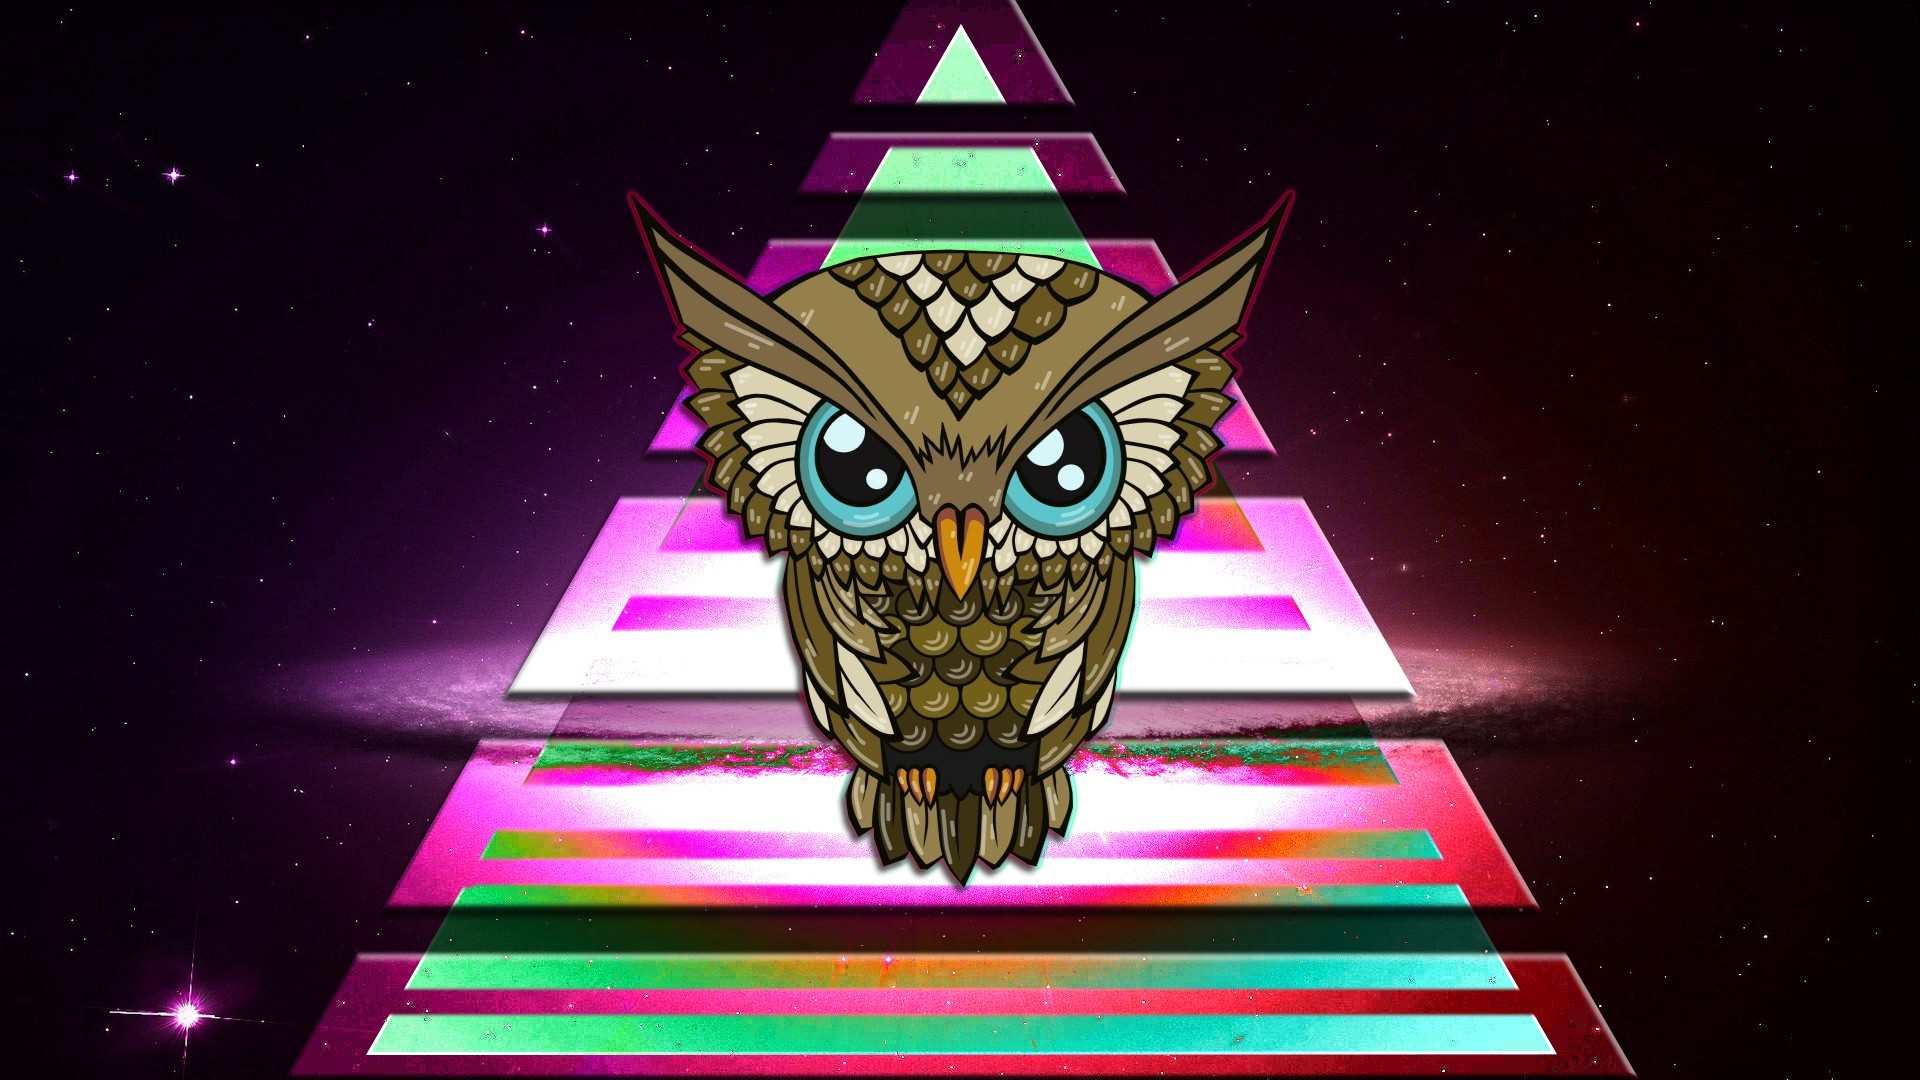 Gravity Falls Wallpaper Anime Owl Triangle Colorful Space Illuminati Wallpapers Hd